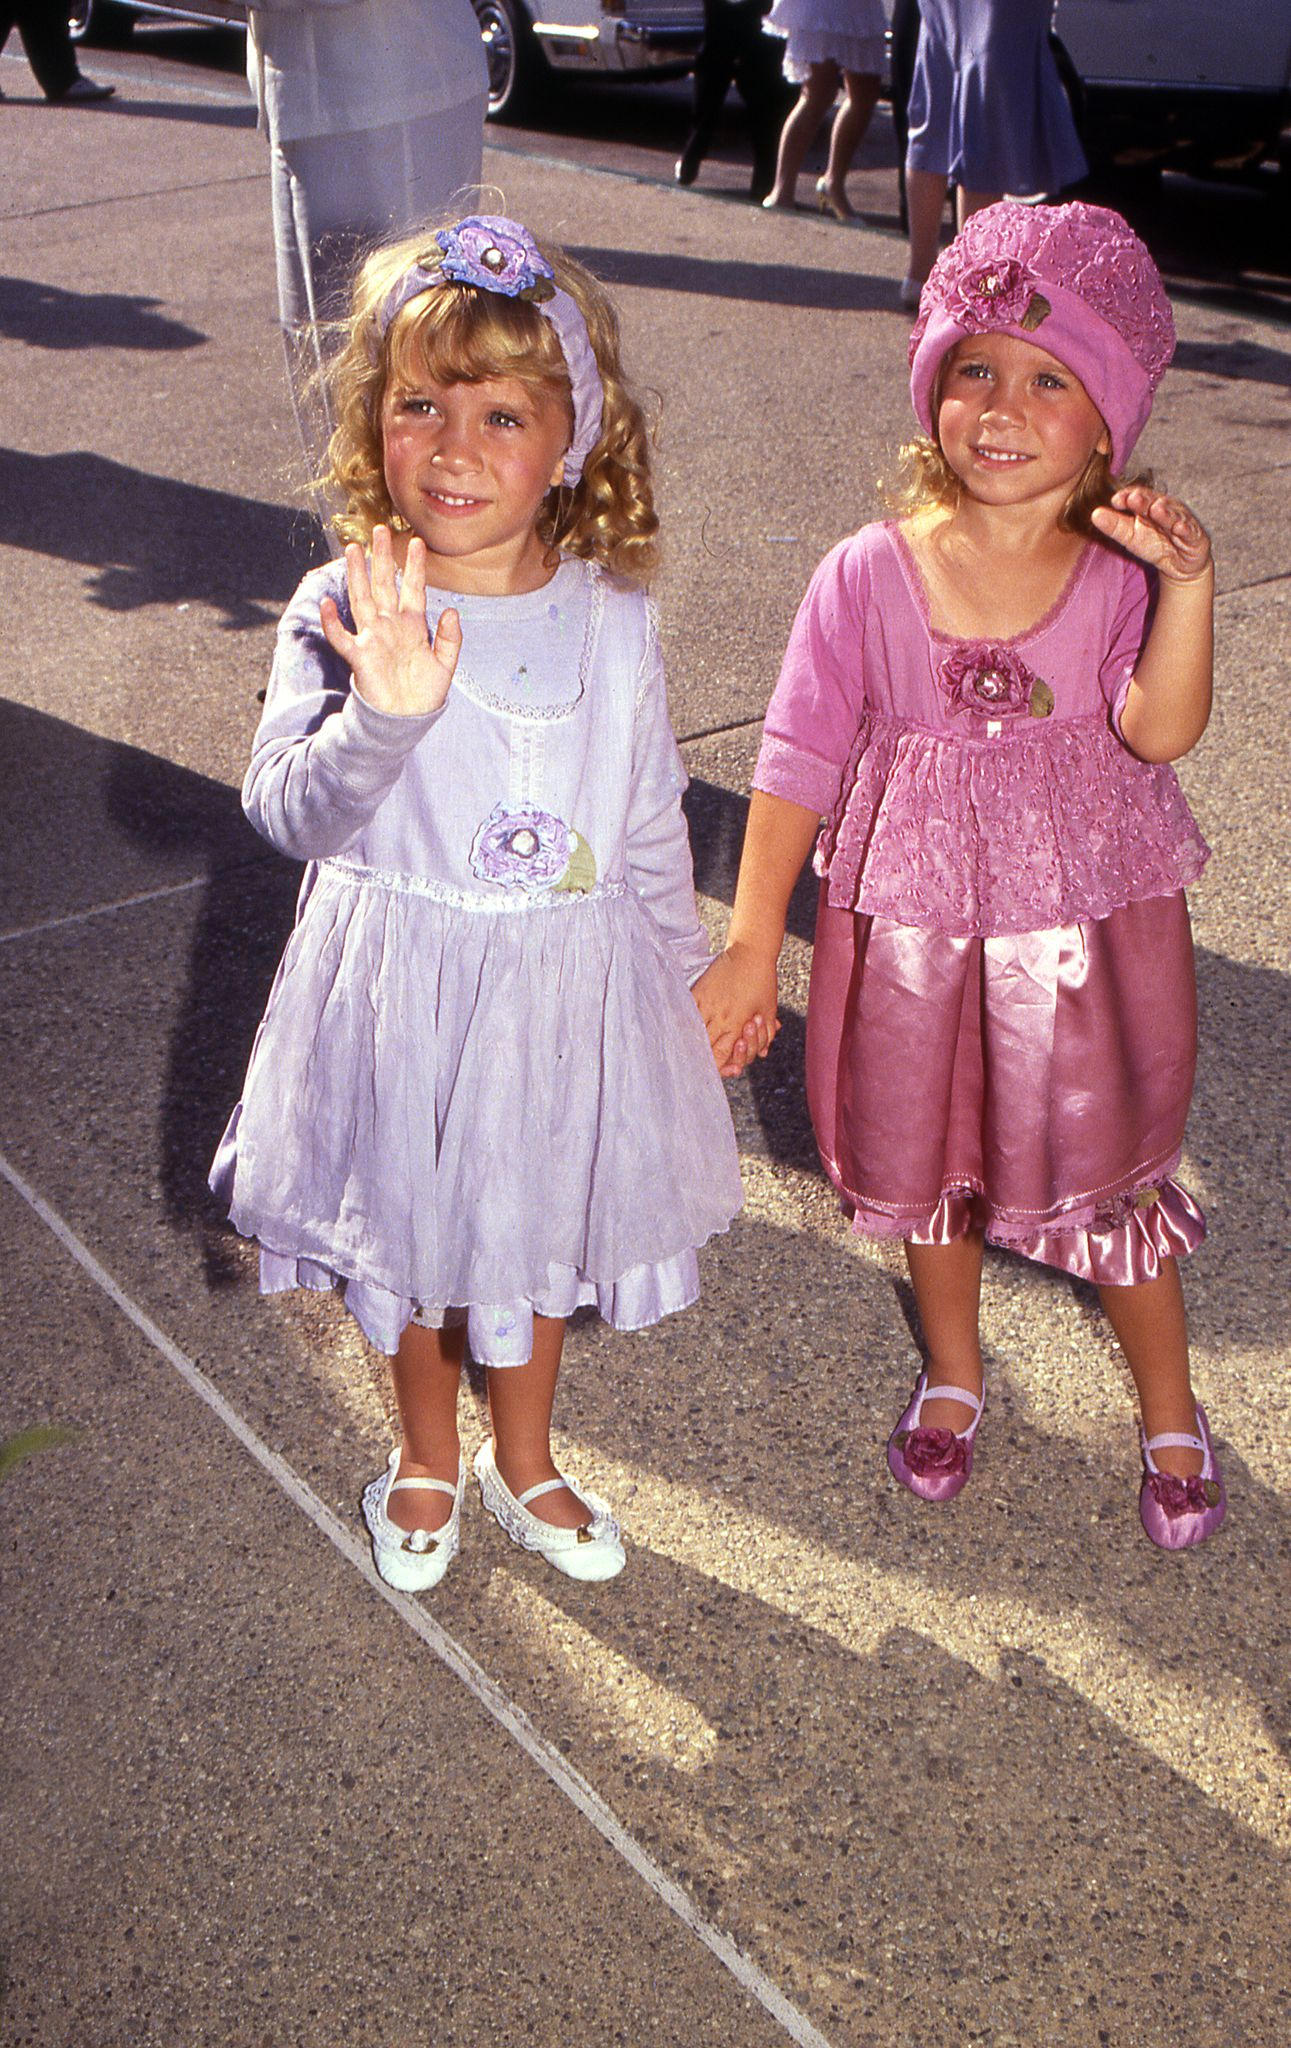 circa 1990 - Mary Kate and Ashley Olsen arriving at a celebrity event | Shutterstock